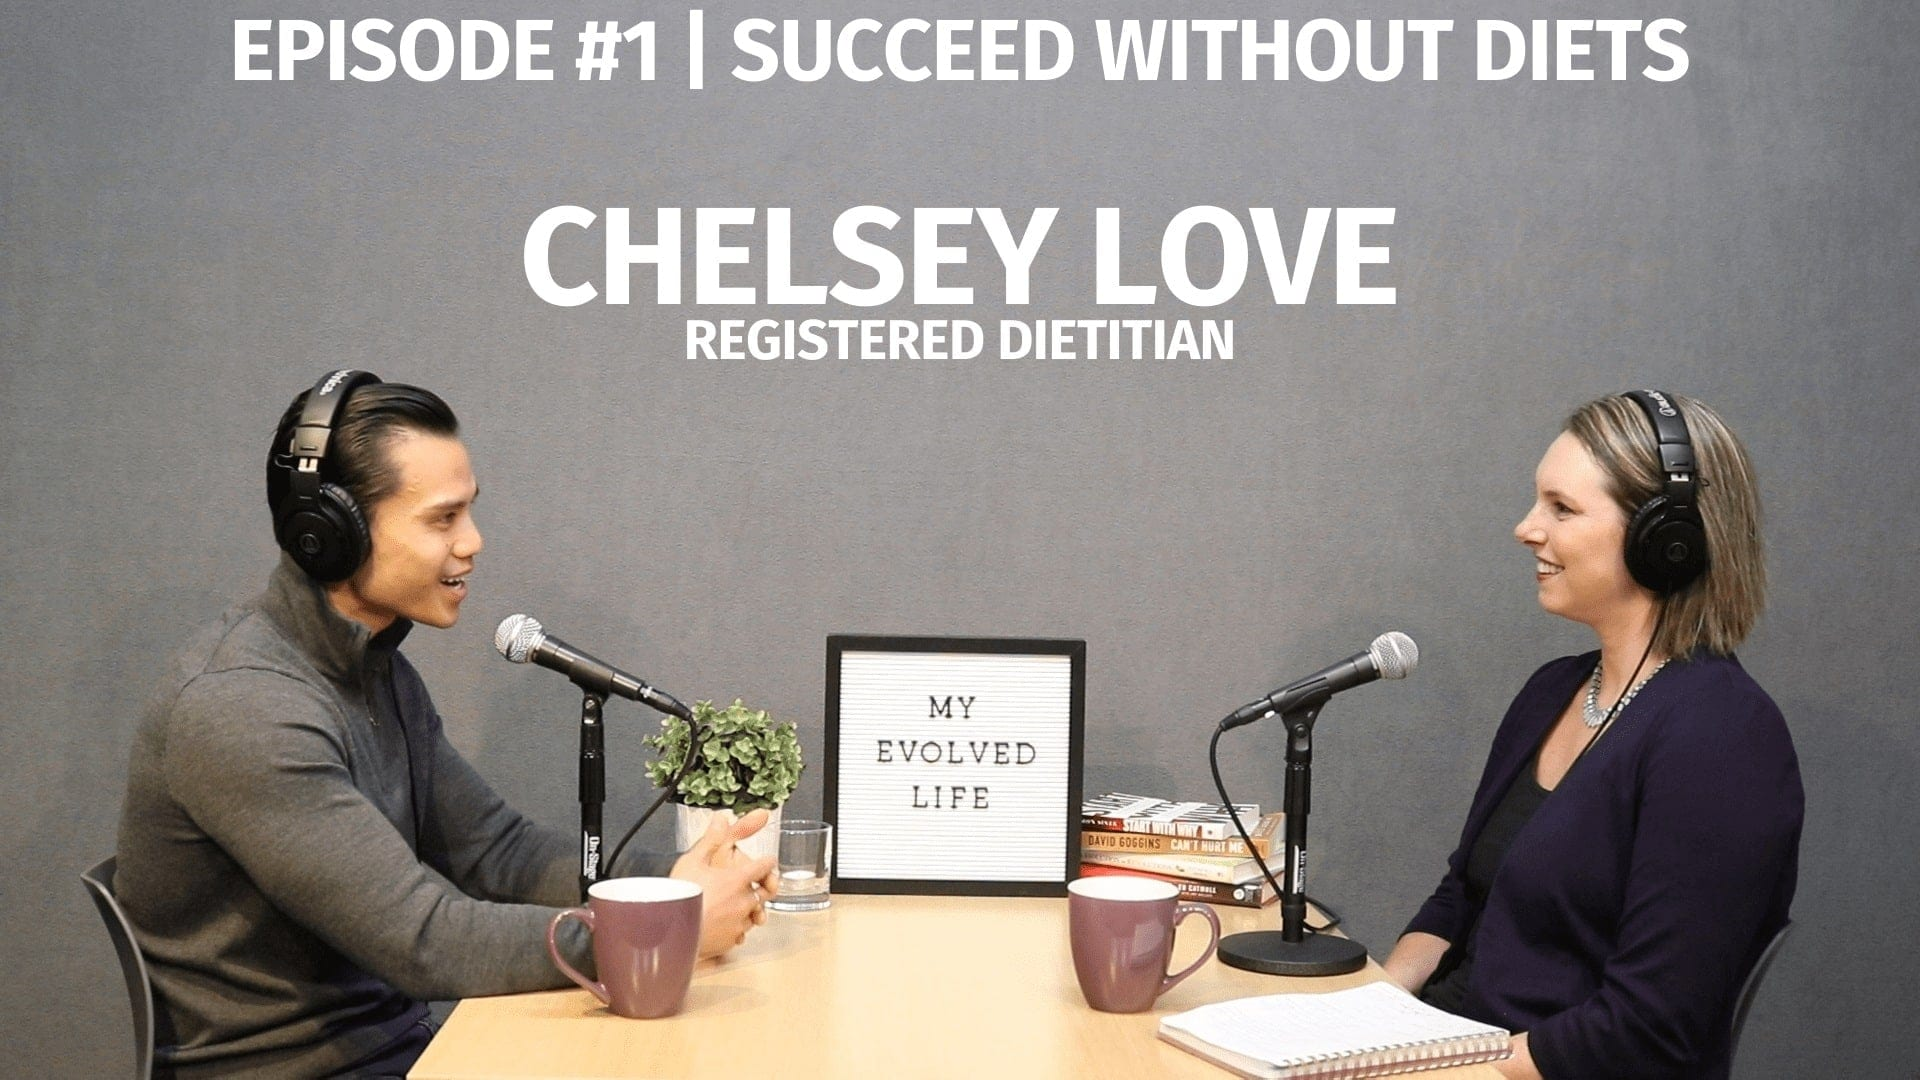 My Evolved Life  Episode #1 - Chelsey Love - Succeed Without Diets